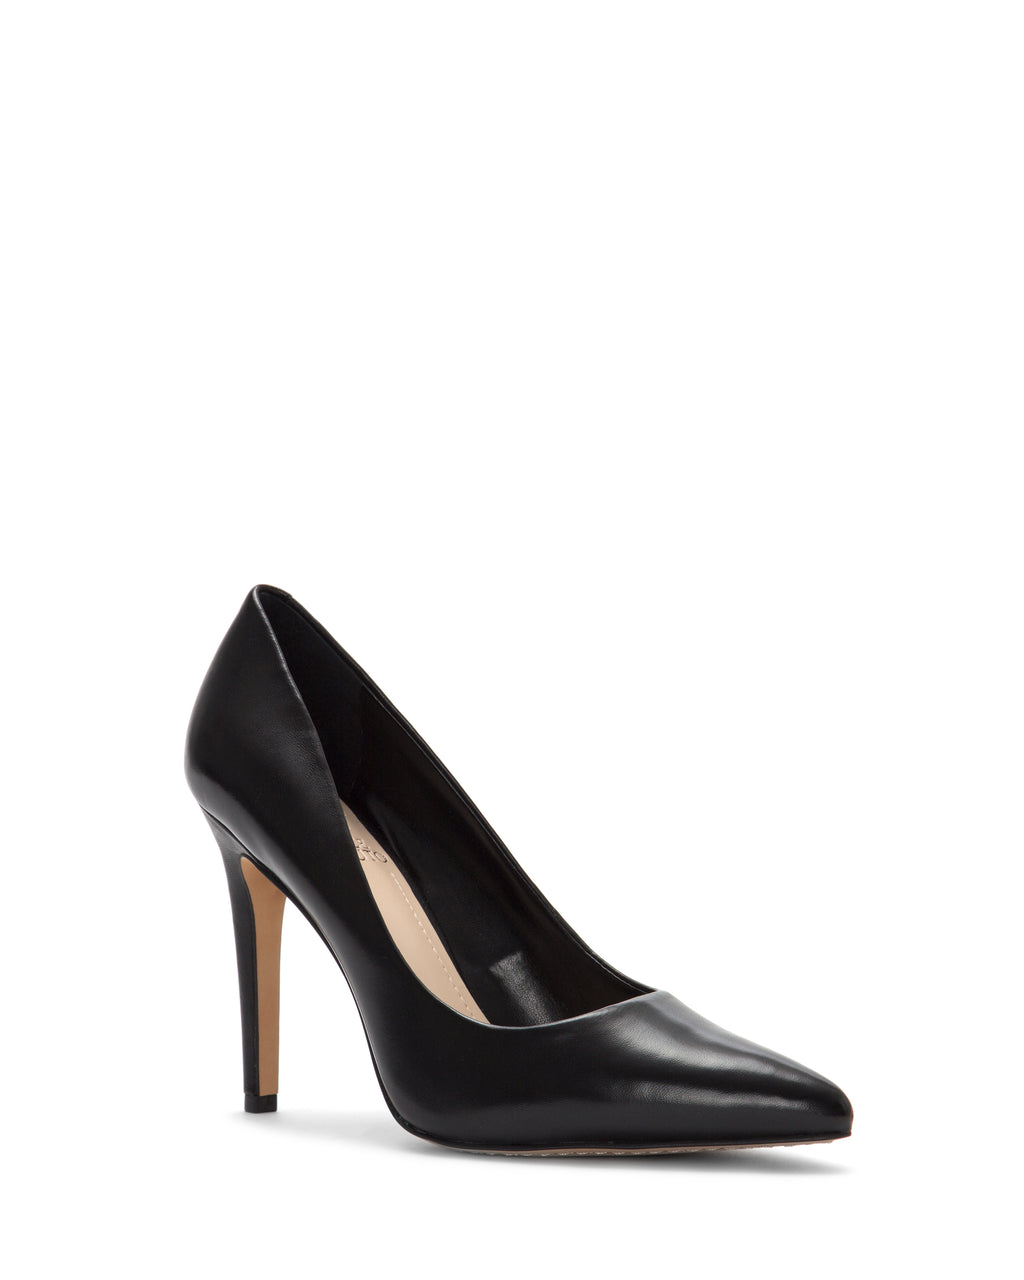 Vince Camuto Kain Shoe - Chaussures Porto